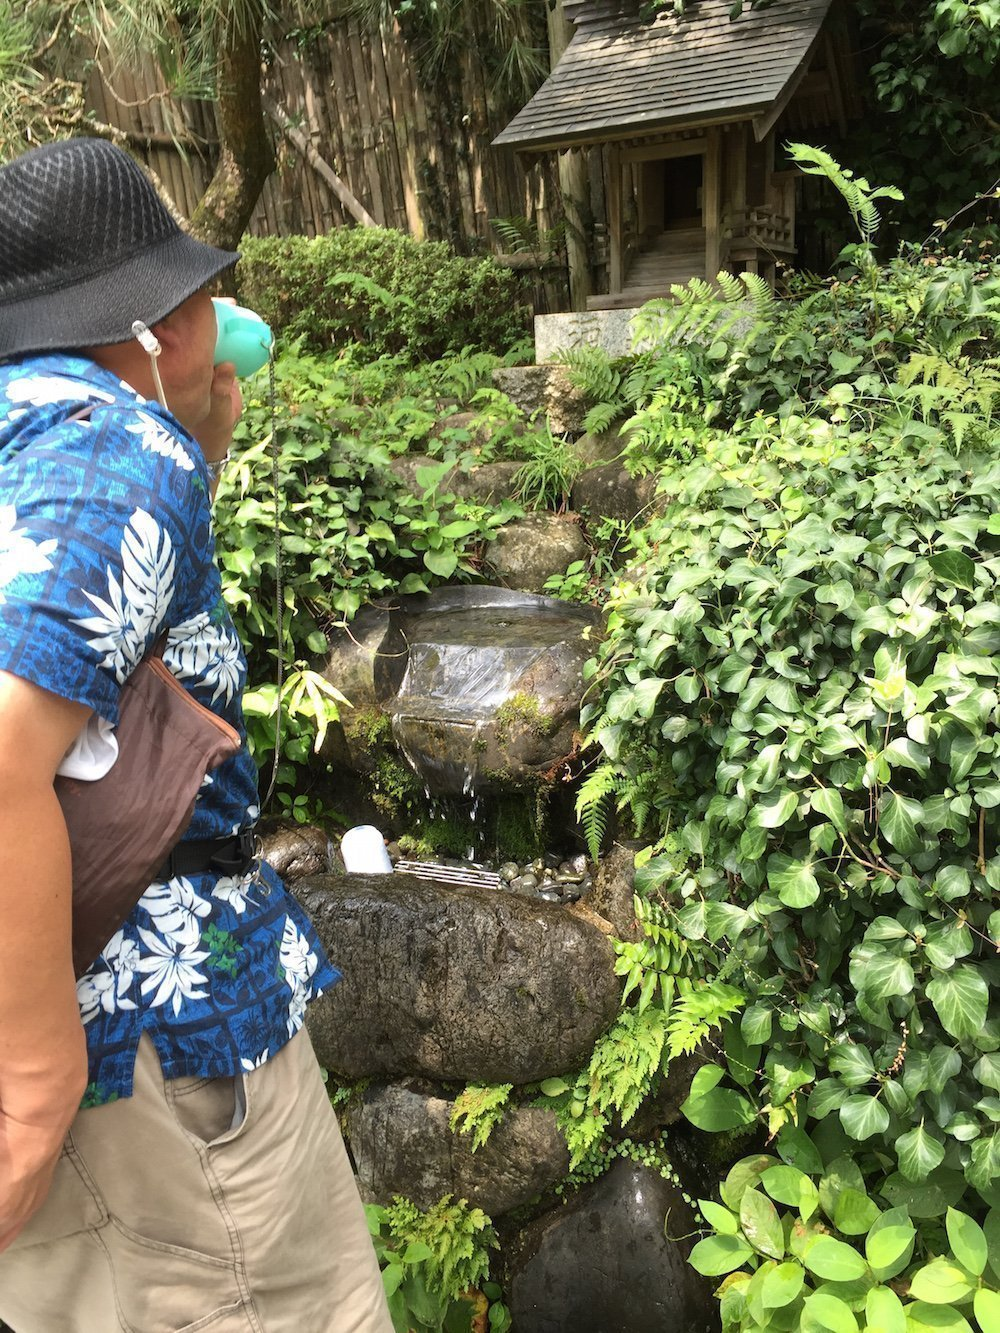 A drinking well for visitors at the Sawanoi Garden